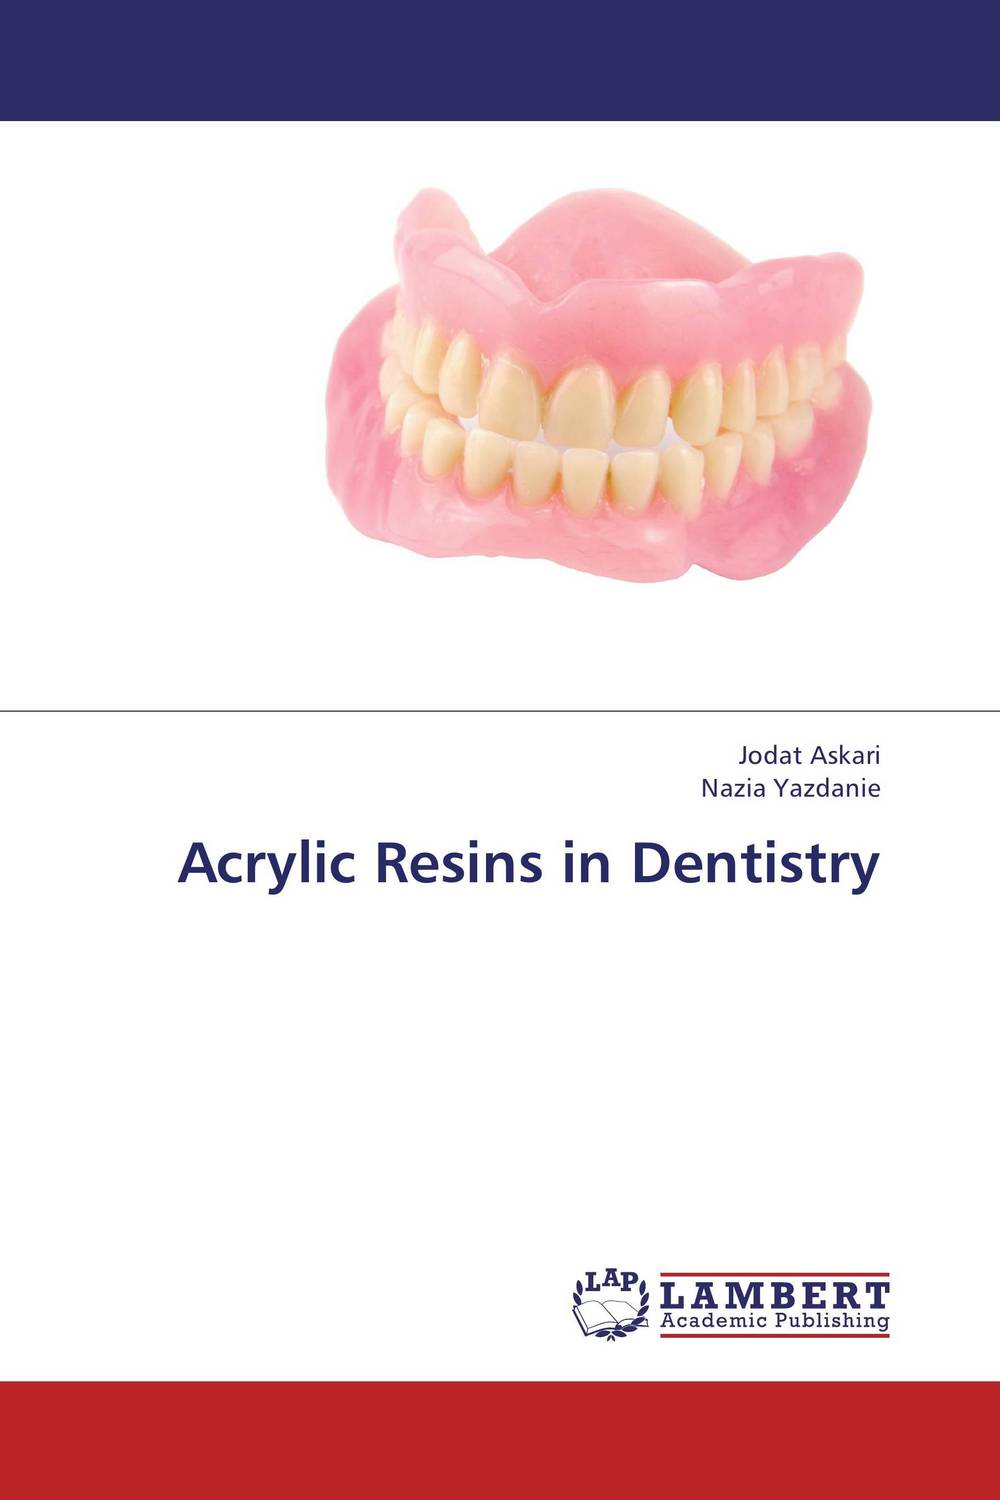 Acrylic Resins in Dentistry karanprakash singh ramanpreet kaur bhullar and sumit kochhar forensic dentistry teeth and their secrets